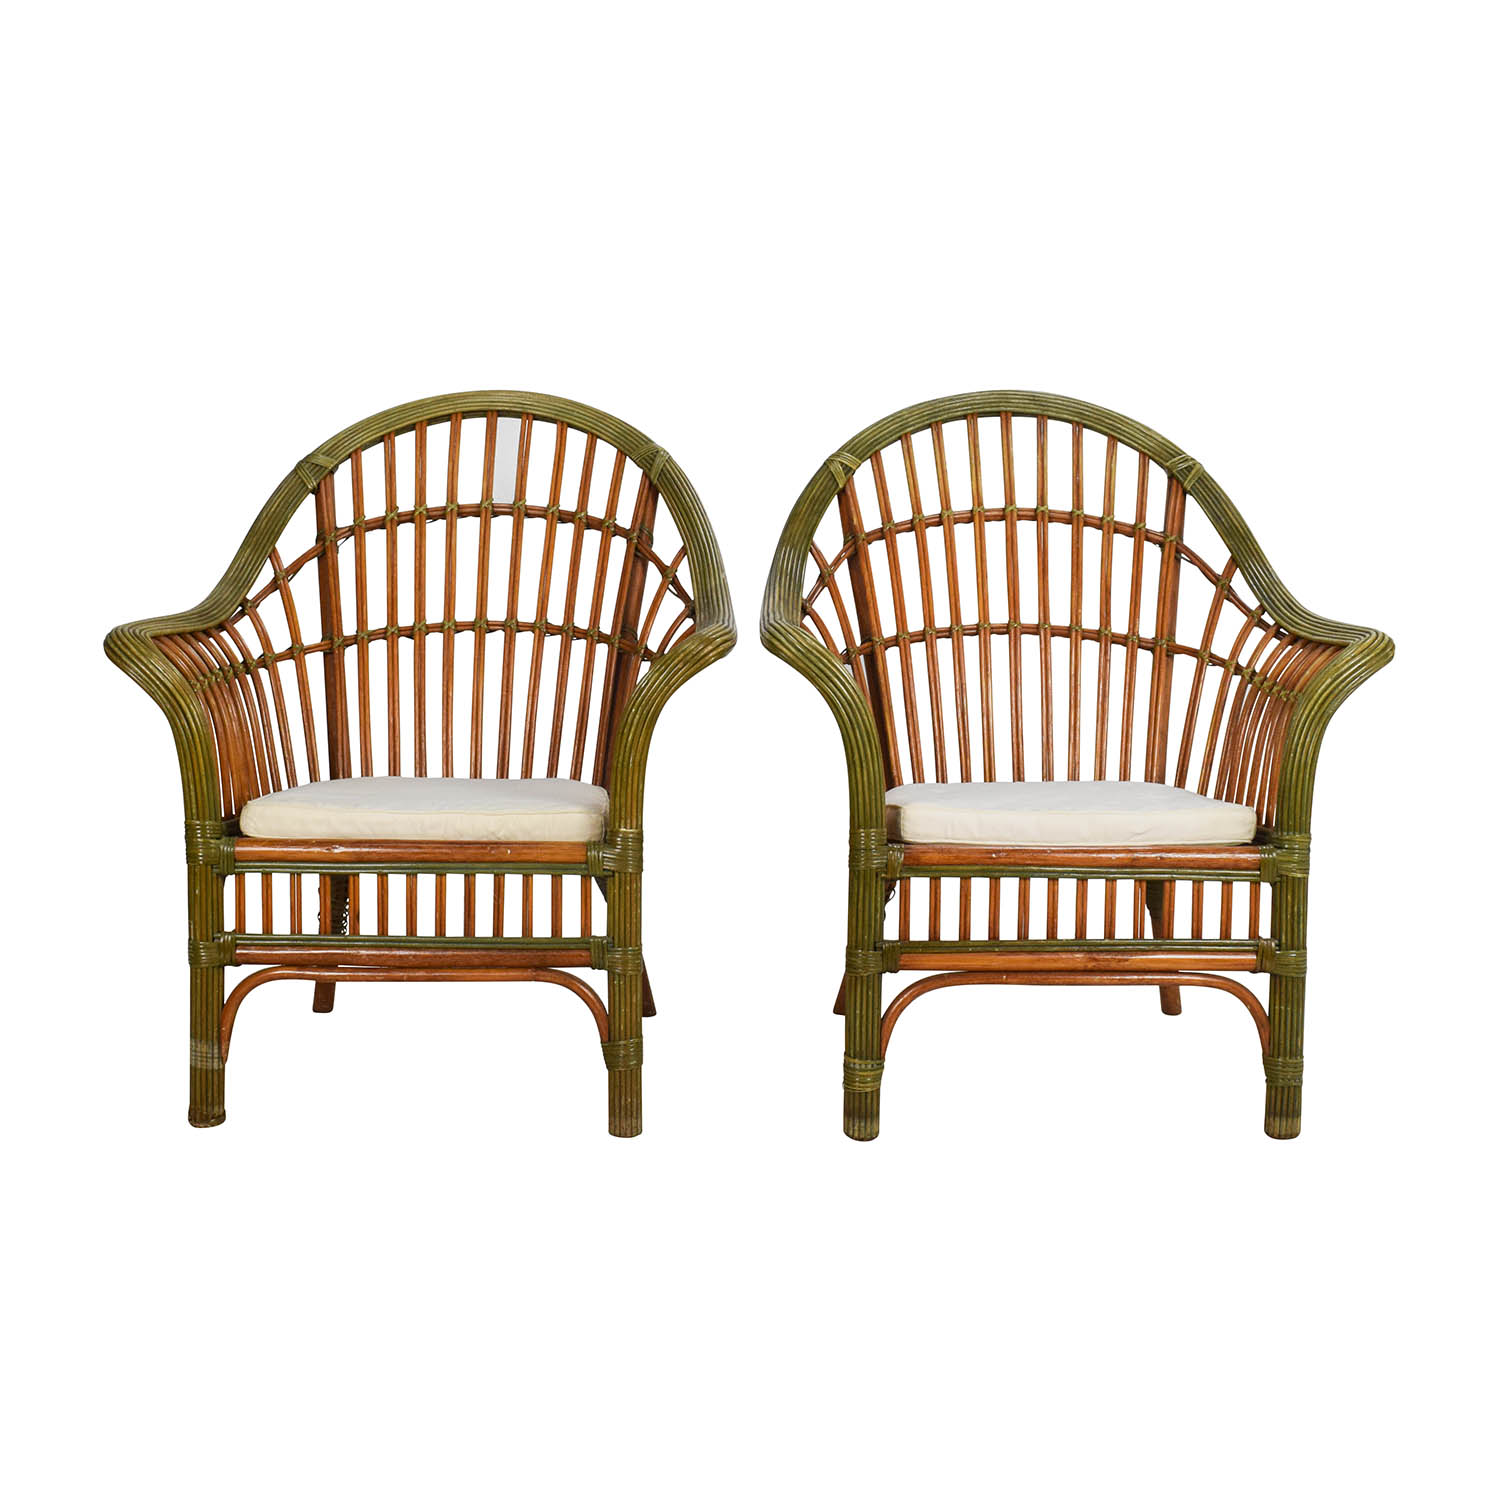 Pair Of Wicker Arm Chairs With Cushions used